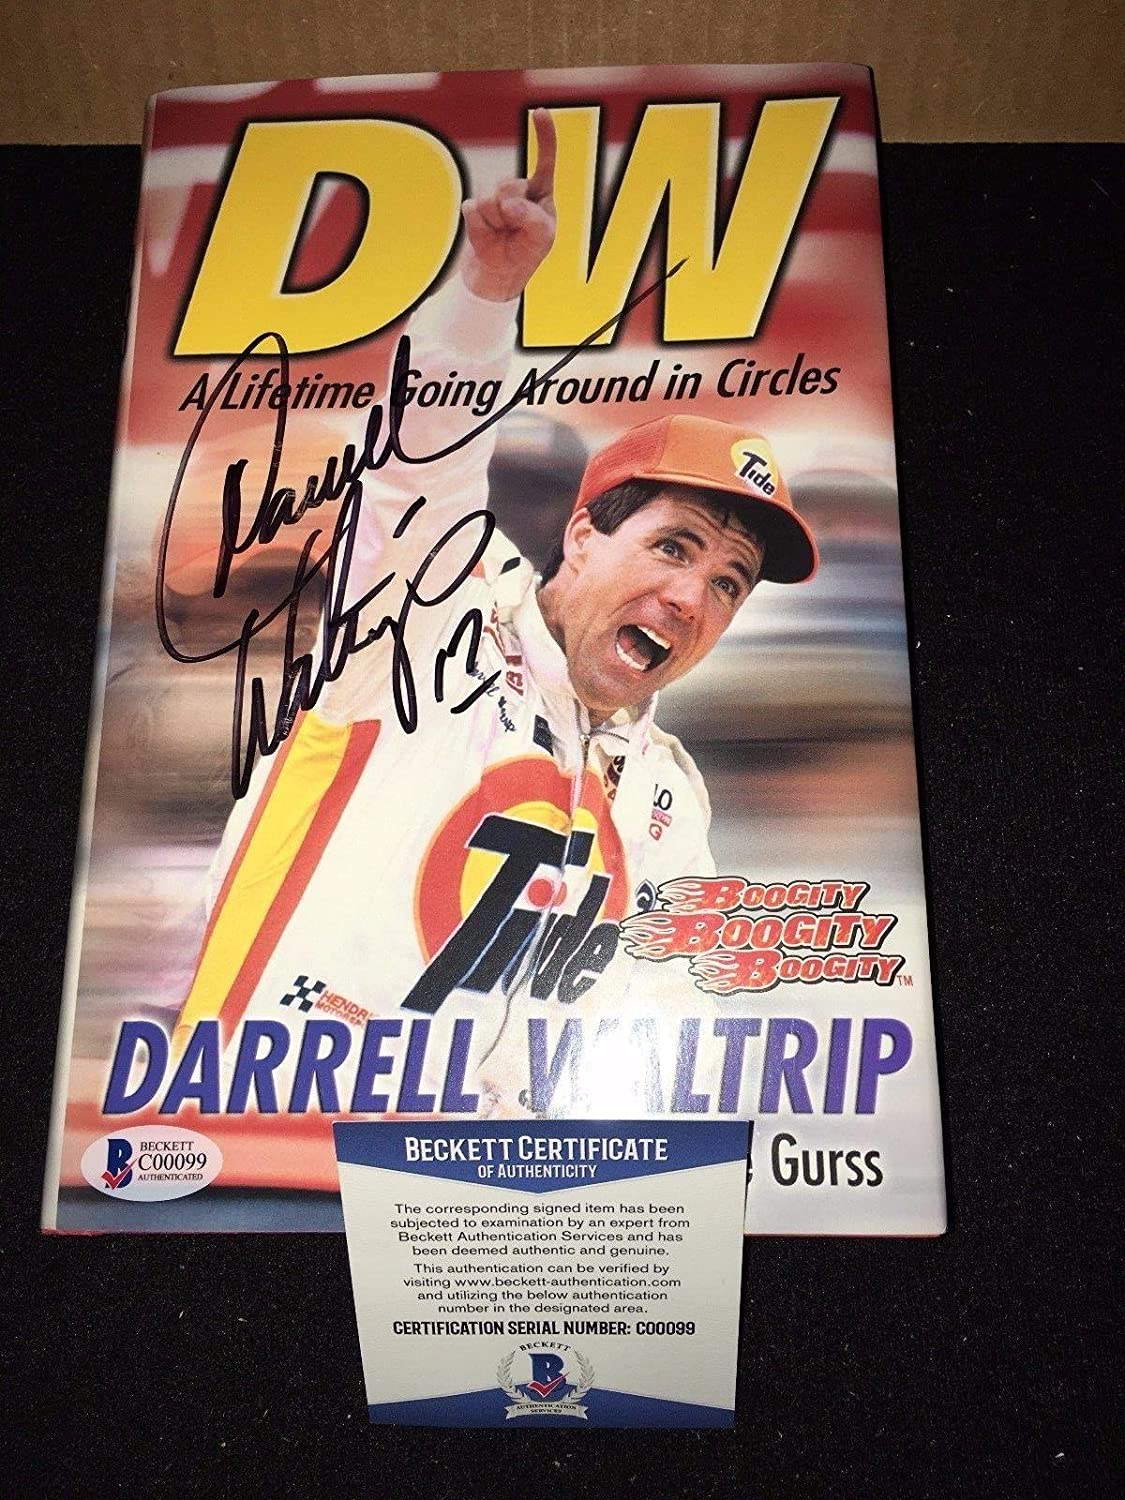 Nascar Darrell Waltrip Signed Lifetime Going Around In Circles Book BECKETT BAS - Autographed NASCAR Miscellaneous Items